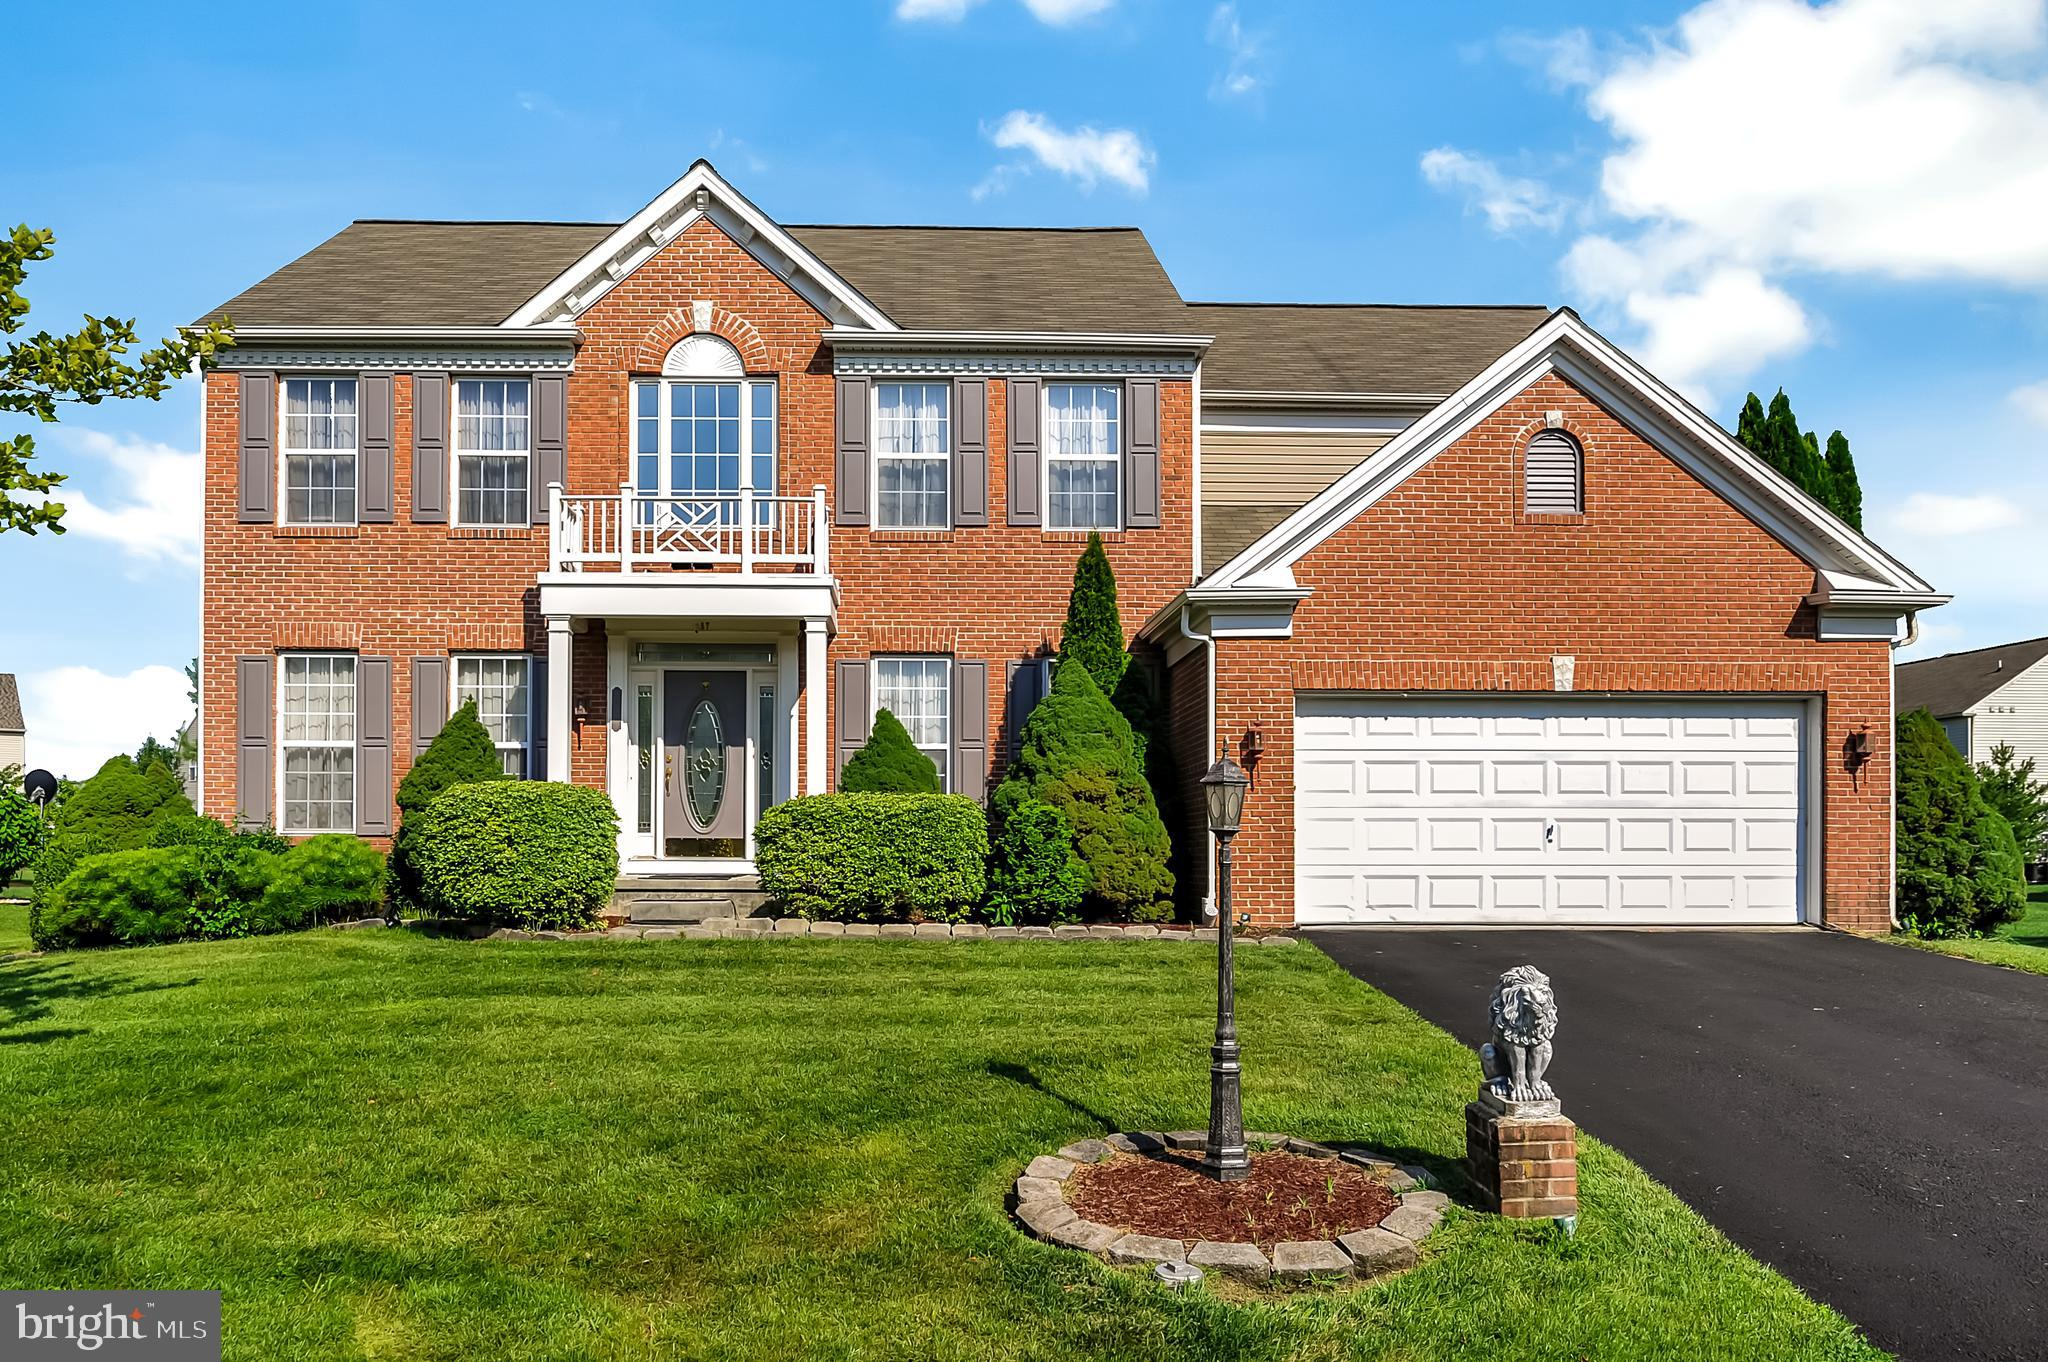 This traditional brick Colonial boasts mature landscaping and a handsome exterior that aims to please the most discriminating buyer. Once inside the two level foyer will wow you and your guests. Light and bright with a split staircase with catwalk at top looking down over the entryway. To your left is the formal living room with a picture window and fireplace. The dining area is perfect for entertaining, located between the formal living room and kitchen. The cook's kitchen features plentiful wood cabinets and endless prep space between the countertops plus the large island. Shiny hardwood floors enhance the design of this space. The island is perfect for a snack or quick meal and has room for four to sit at it. Off the kitchen is a large eating area with chandelier and sliding doors to the back patio. Beyond the kitchen and eating area is the large family room with another fireplace and a wall of windows to show off your gorgeous backyard. Retreat upstairs to your luxurious master suite! The en suite bathroom is spa-quality with a soaking tub, walk-in shower, and large vanity. The other three bedrooms feature wall-to-wall carpeting, ceiling fans, large closets and multiple windows for natural light. They all share a hallway bathroom with a tiled tub/shower combo and large vanity with plenty of room for storing all the essentials. The laundry room is conveniently located on the second floor too, complete with built-in storage space! There is additional space in the separate office, perfect for working from home or eLearning! Out back you have your own personal oasis with the brick paver patio complete with sunshade for those hot summer days. The yard is expansive and lined with a wall of mature trees for your privacy. Enjoy keeping your grounds gorgeous year round and saving money on your utility bills with the custom sprinkler system and private well! Click the link to take a virtual tour: https://bit.ly/3fS38c6